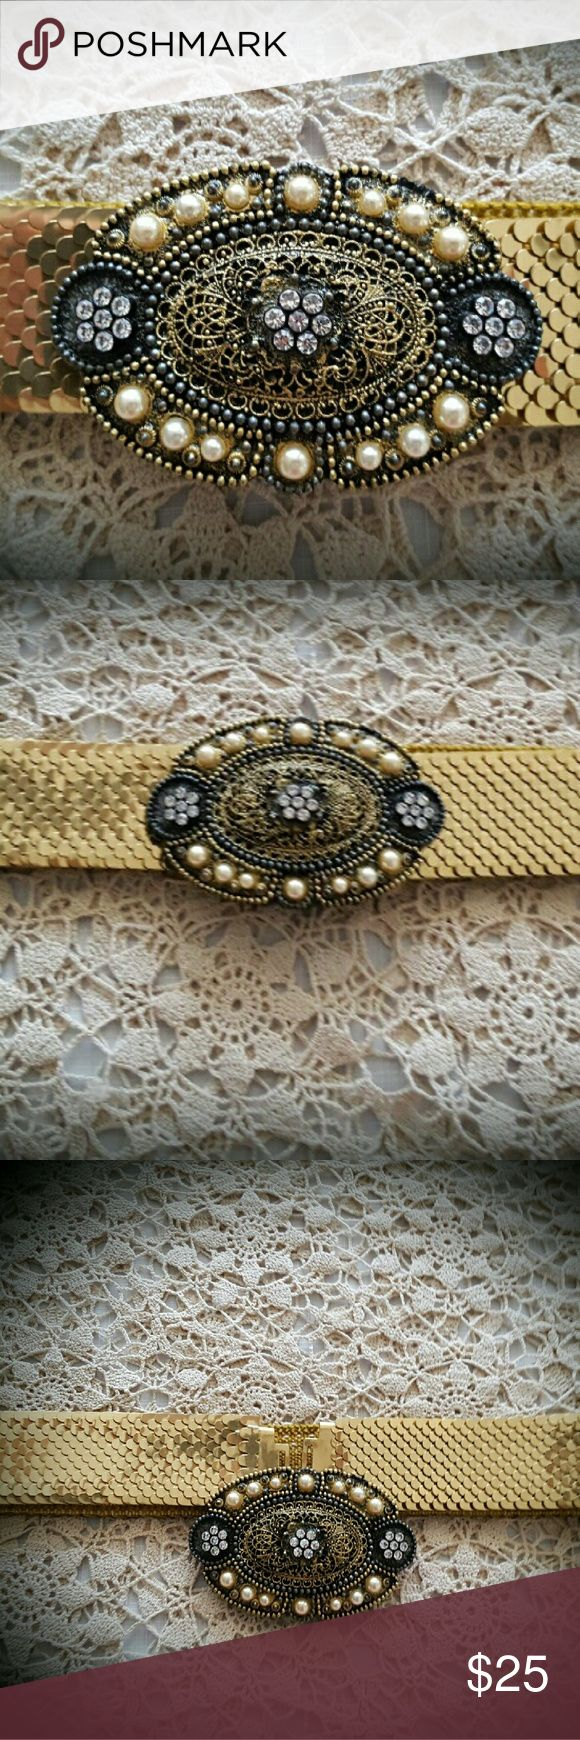 Gorgeous Rhinestone Belt Buckle & Gold Metal Belt This super cute gold metal belt is set off with a fabulous matching deachable rhinestone and pearl buckle.  A gorgeous  accessory in beautiful condition.  Women's size is 12-14. Accessories Belts